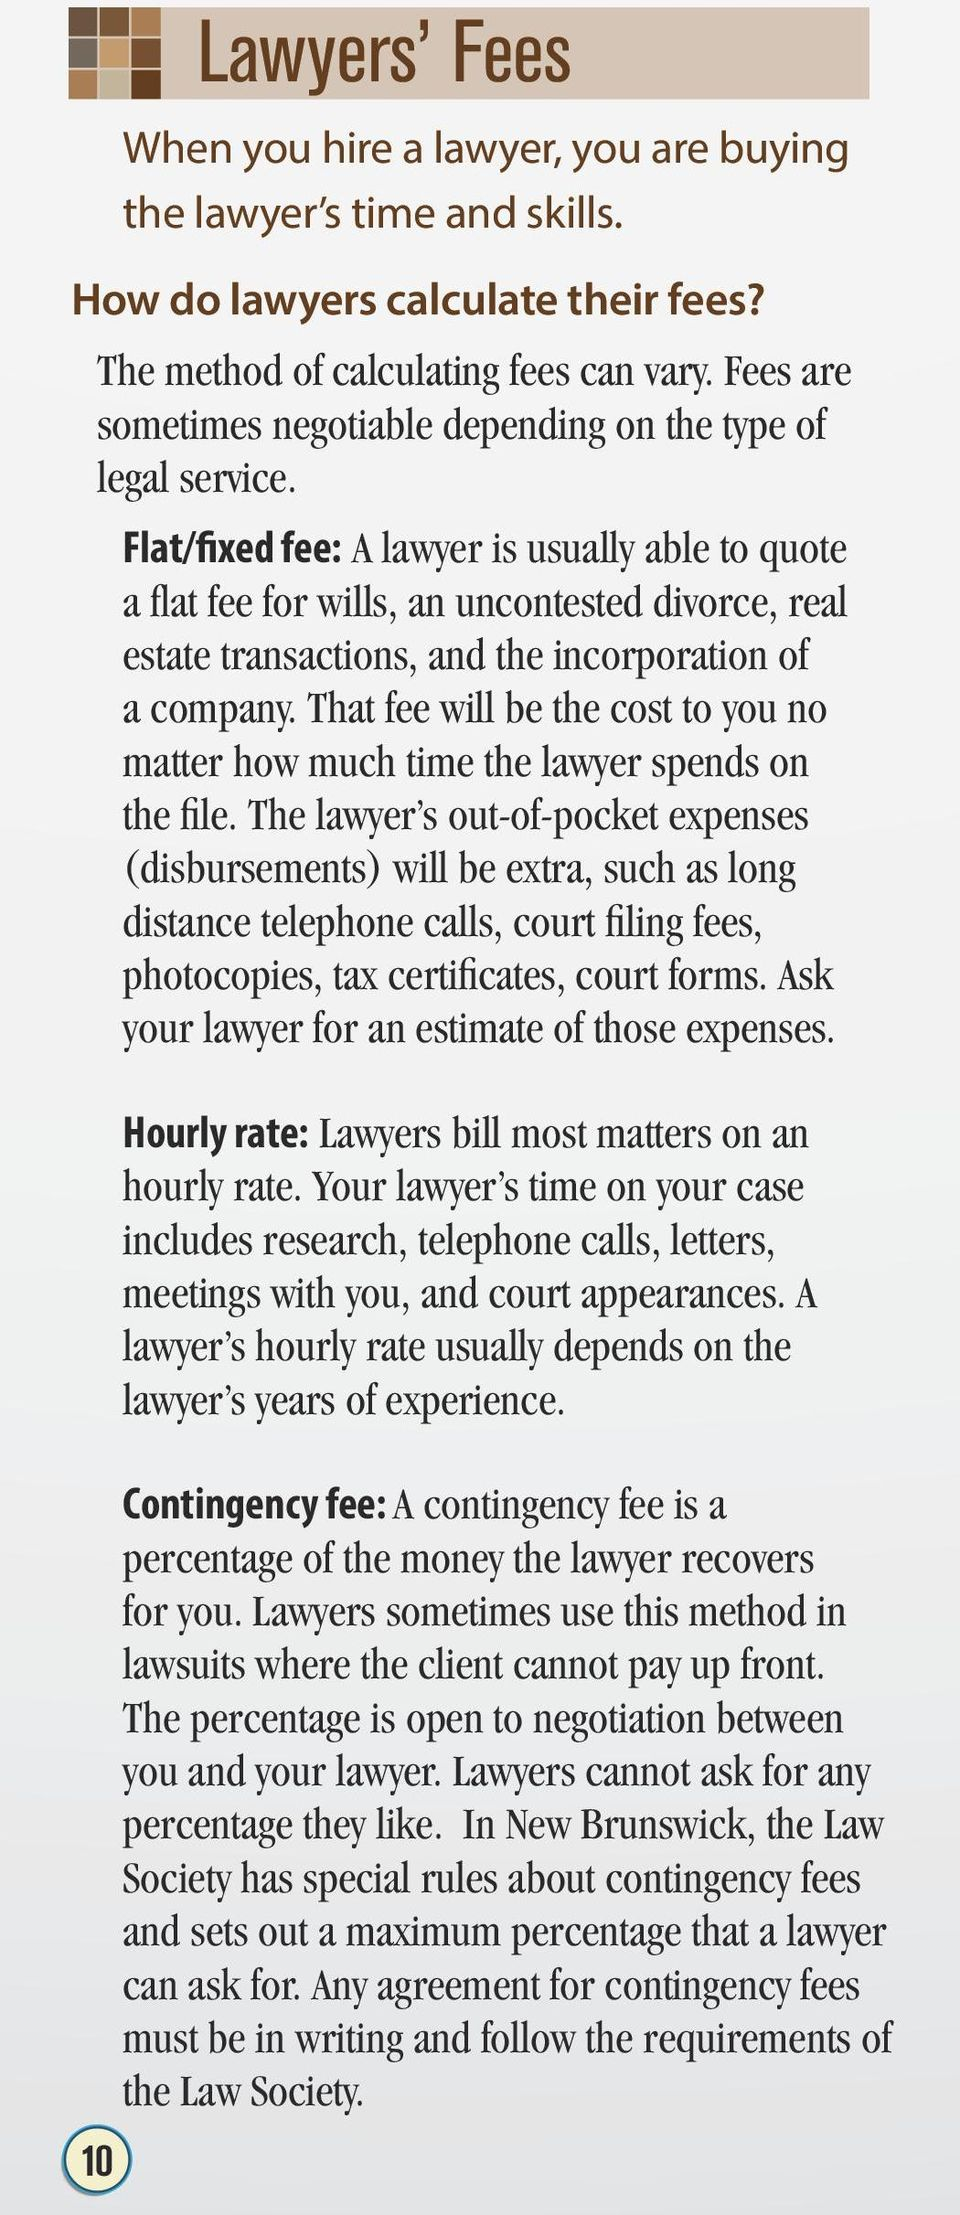 Flat/fixed fee: A lawyer is usually able to quote a flat fee for wills, an uncontested divorce, real estate transactions, and the incorporation of a company.